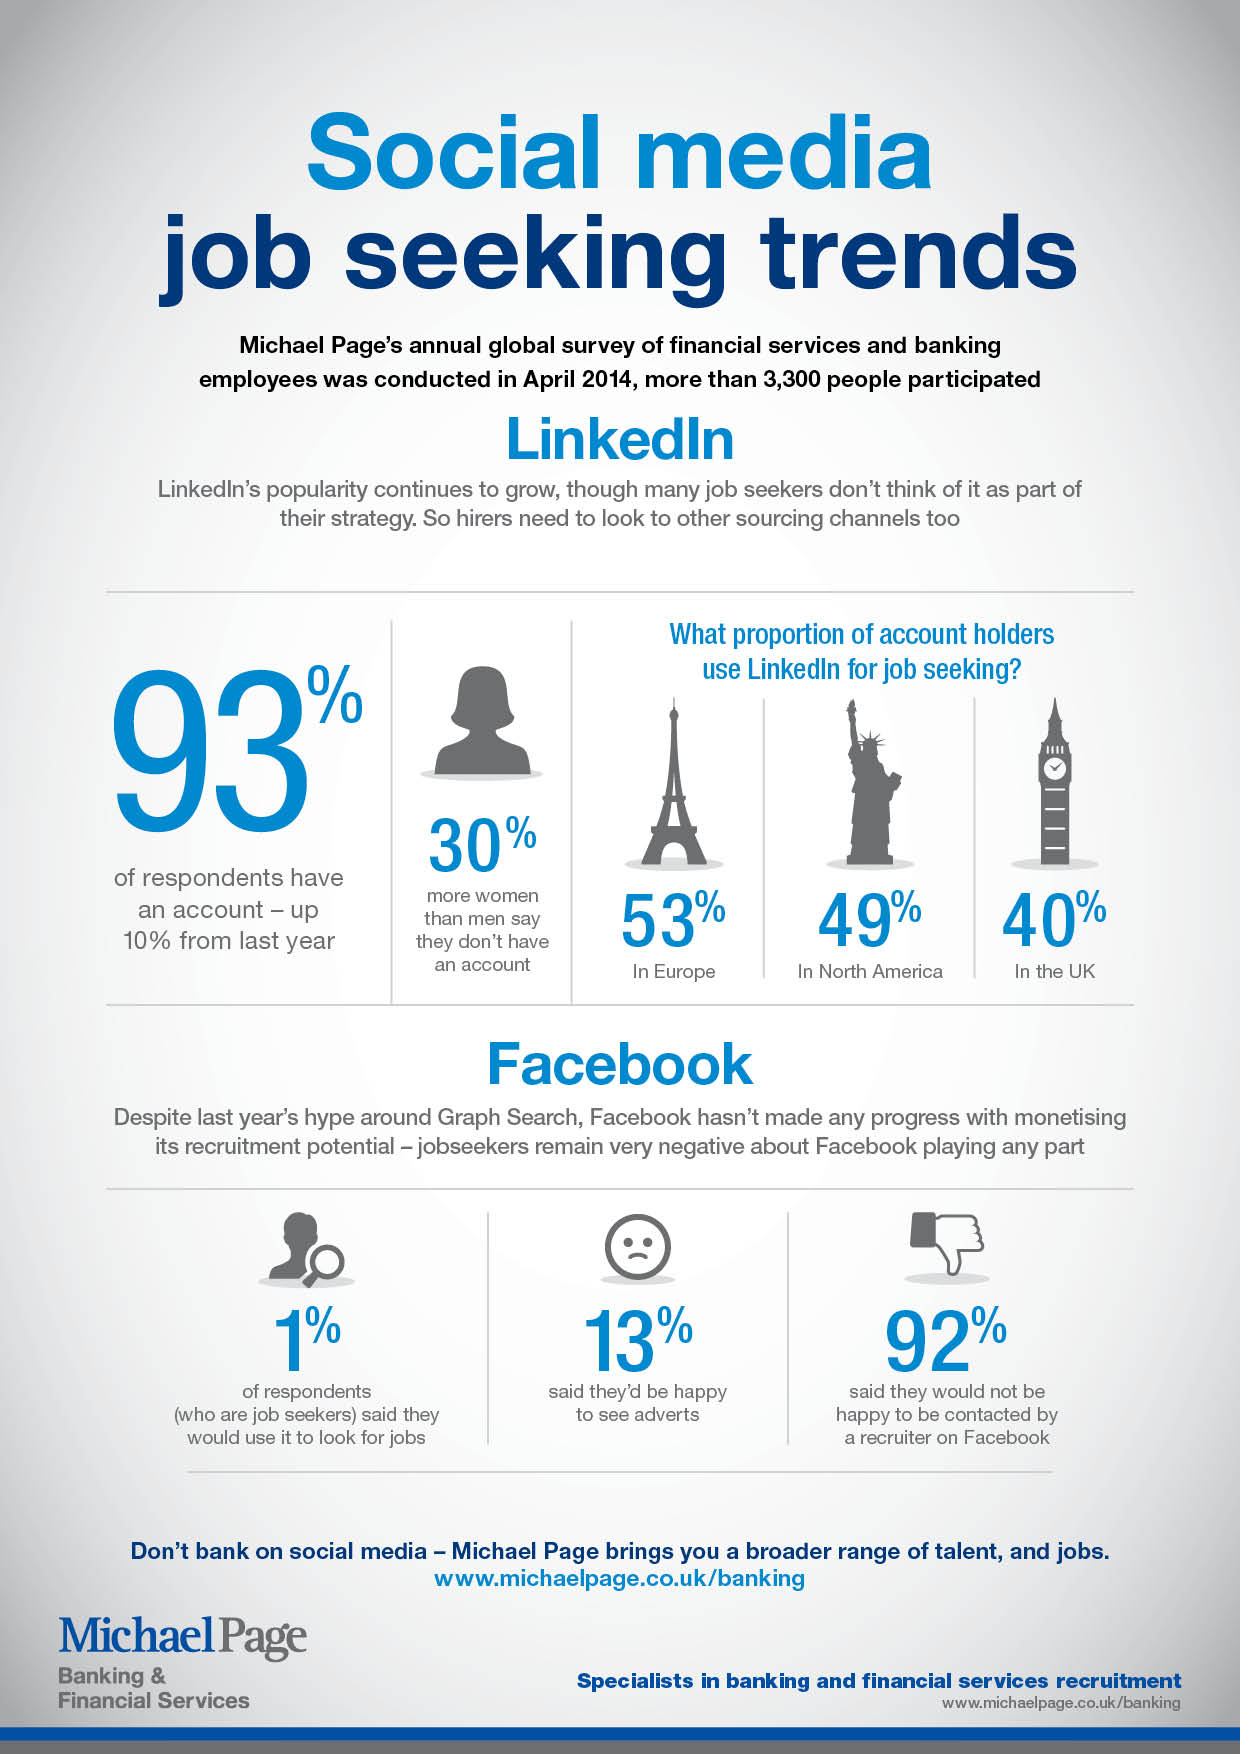 Social media job seeking trends